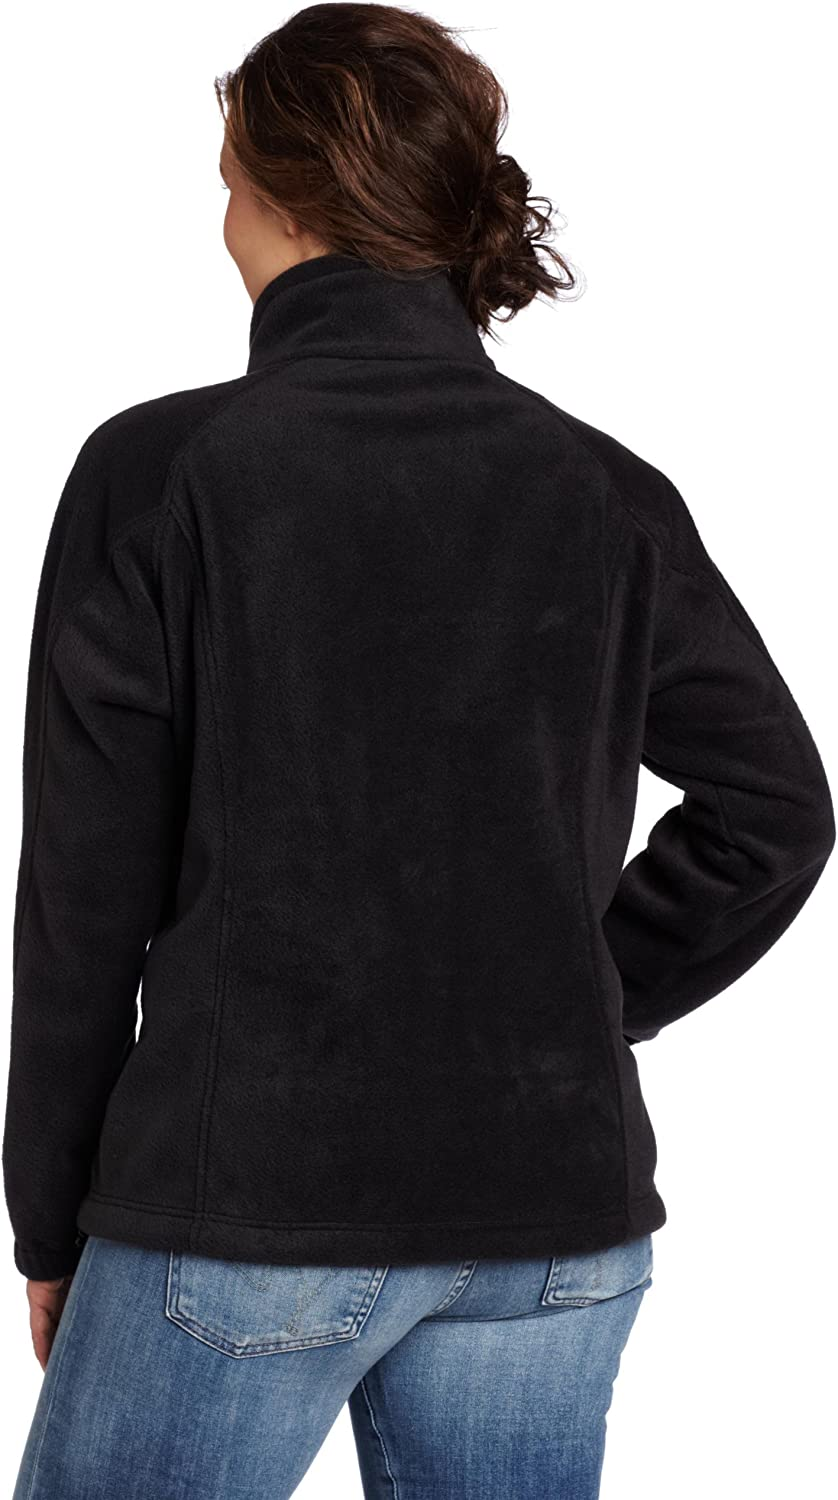 Soft Fleece with Classic Fit Columbia Womens Benton Springs Full Zip Jacket